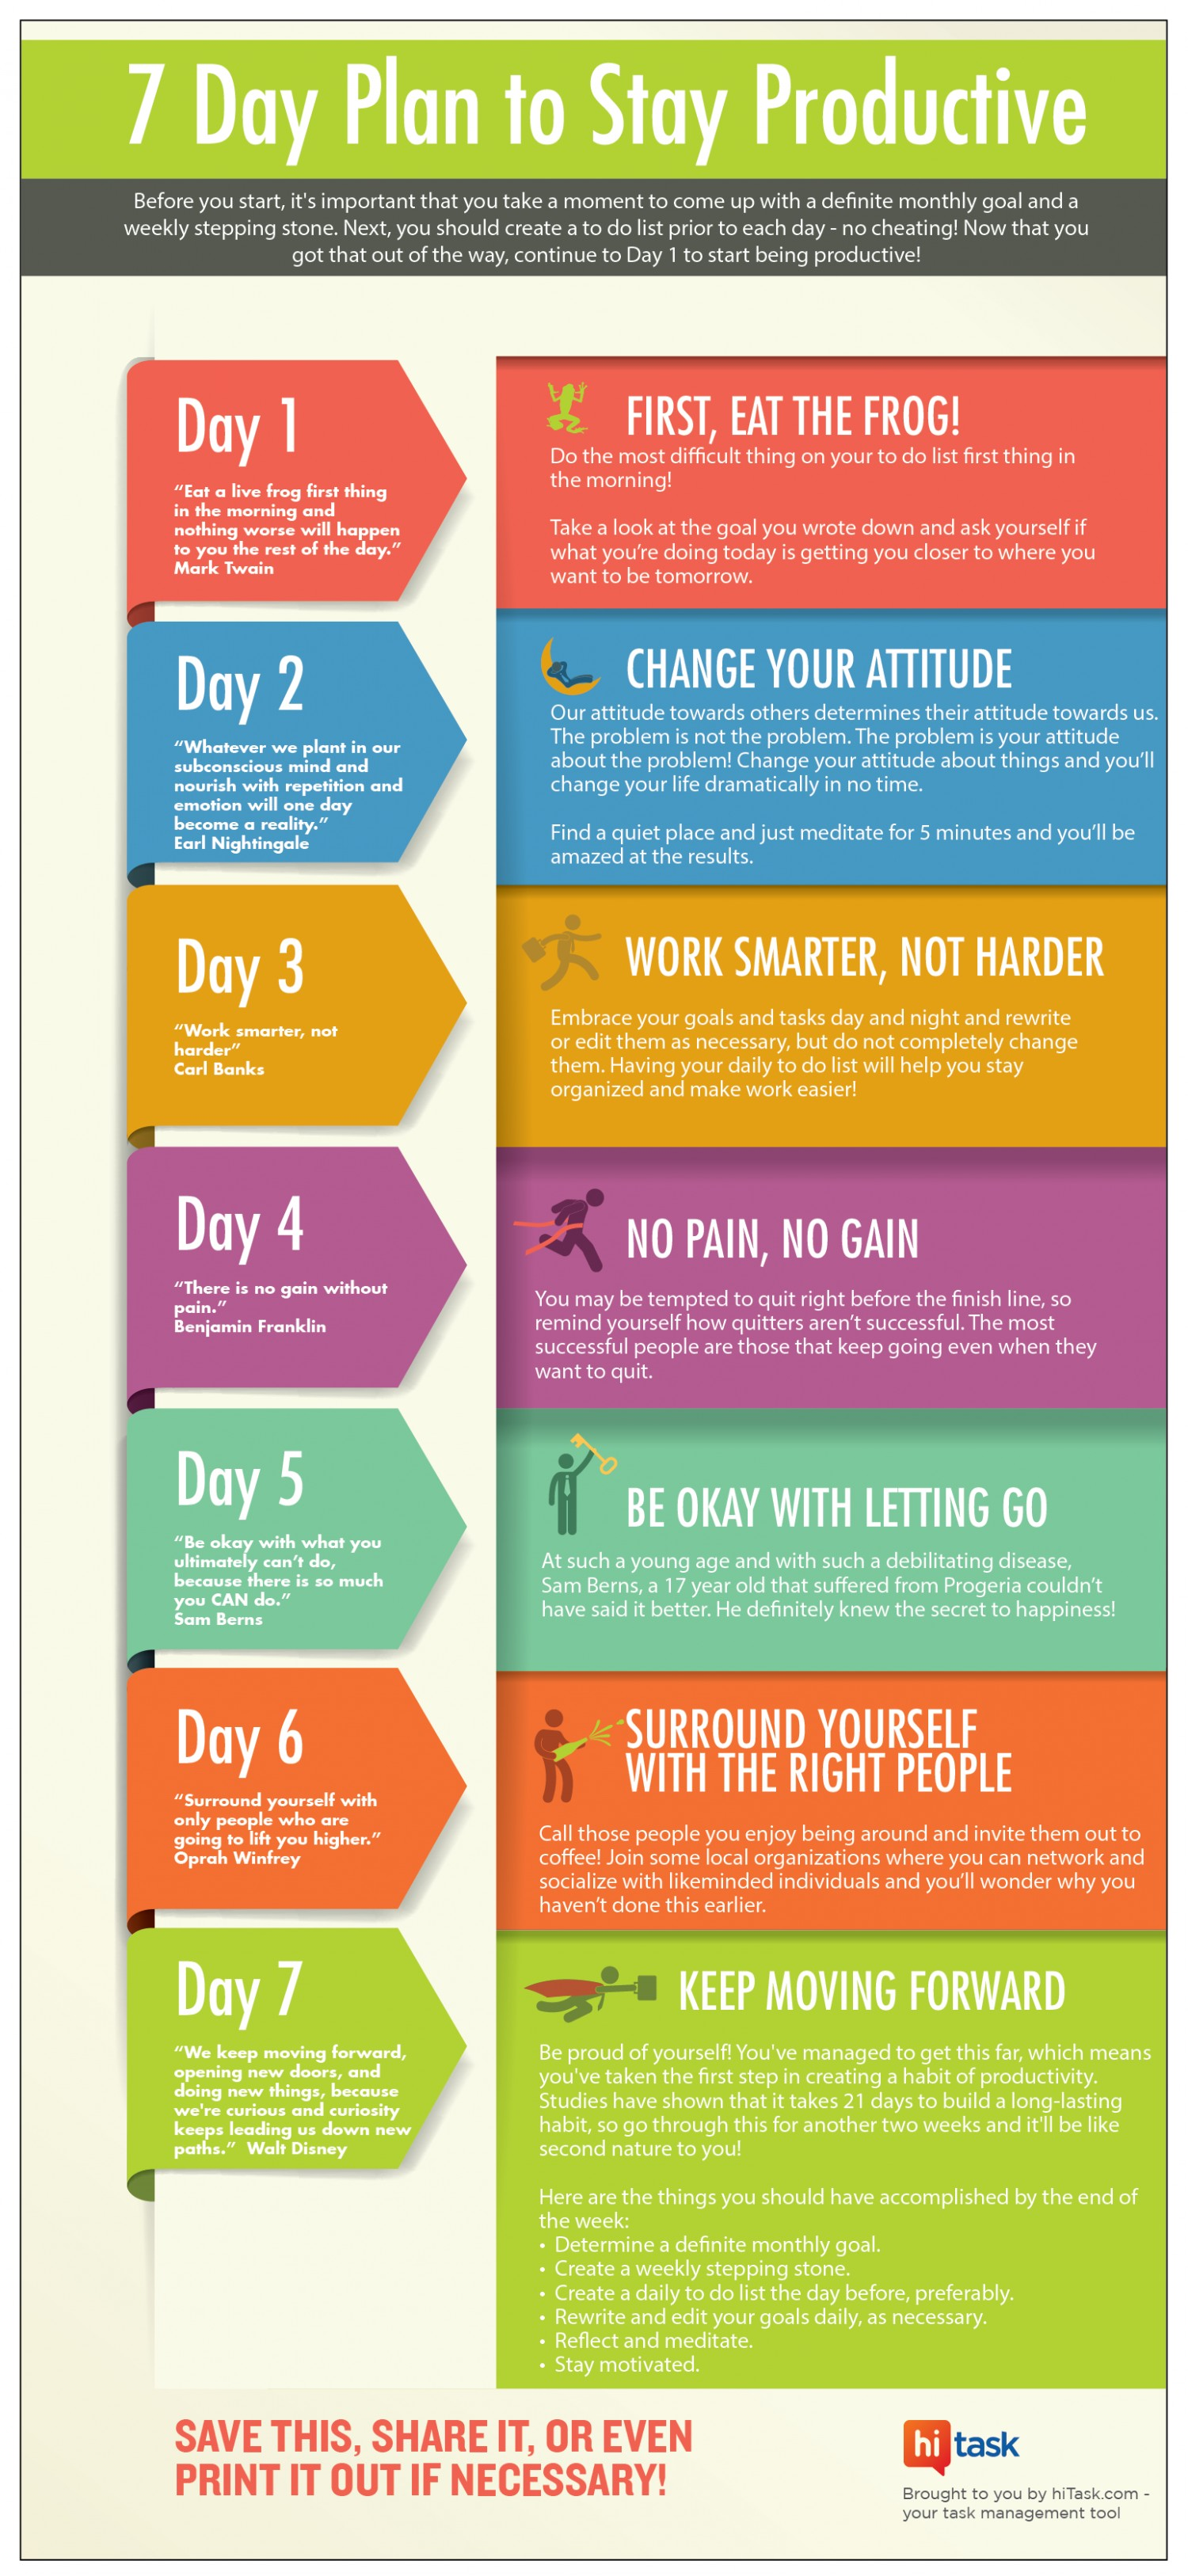 24 7-day-plan-to-stay-productive_53278fb0d753d_w1500